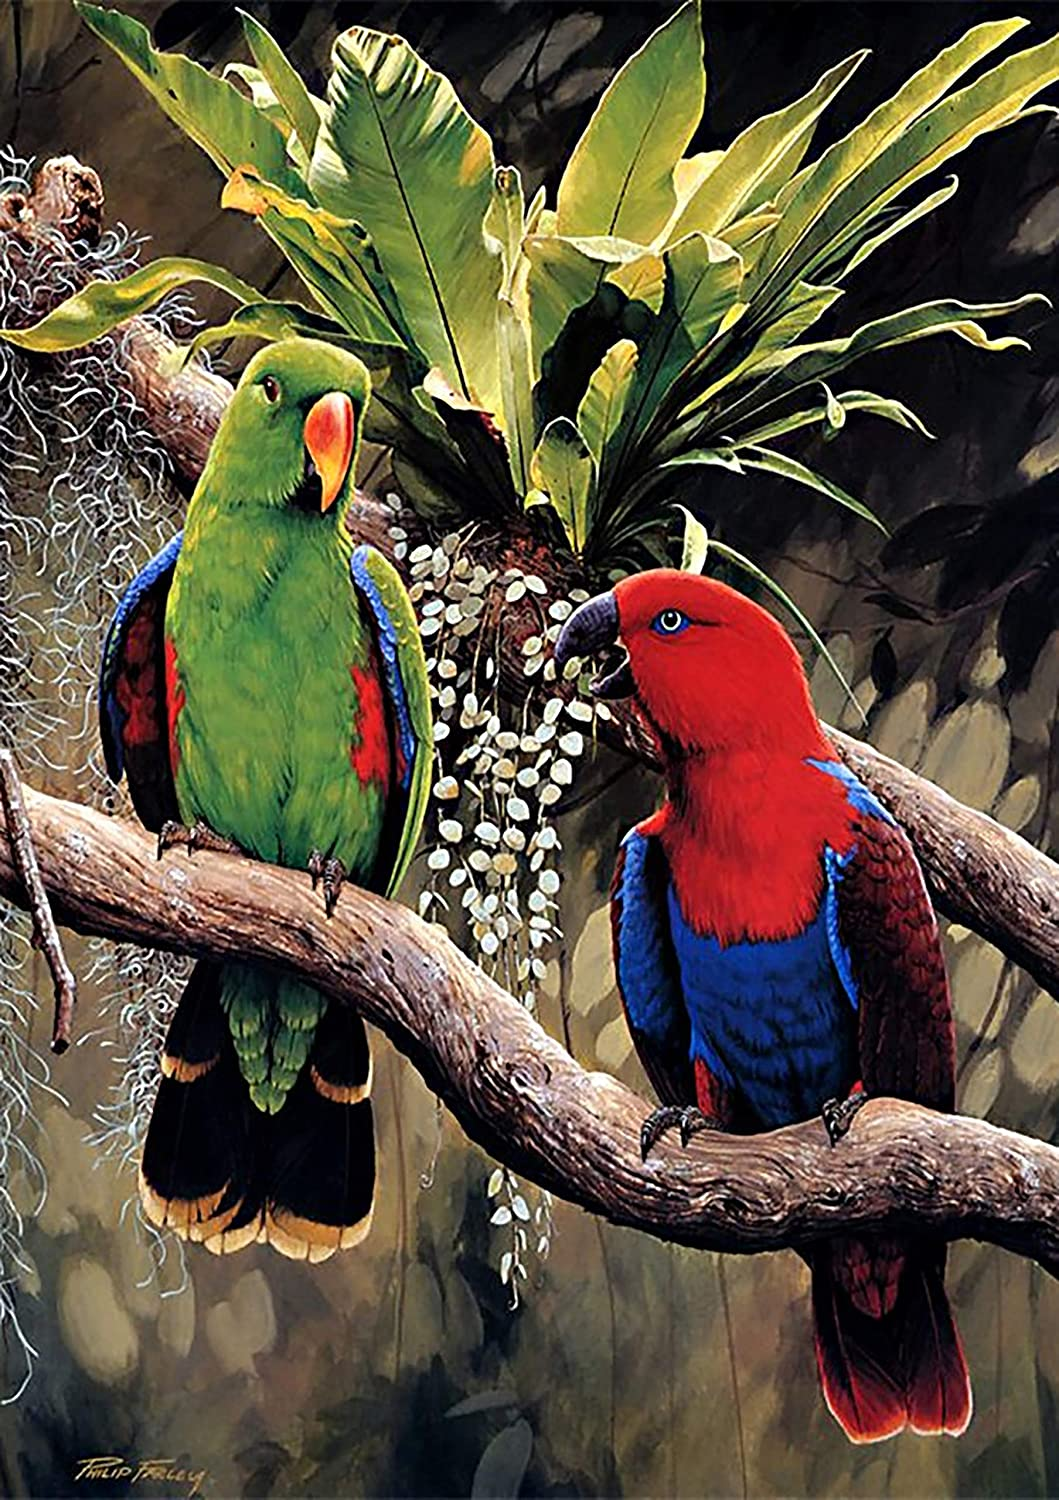 DIY 5D Diamond Painting Full Kits Parrot Cross Stitch Kit for Adult Diamond Painting Kits Crystal Embroidery Pictures Cross Stitch Art Craft for Home Decor Family Ornaments 12X16 inches